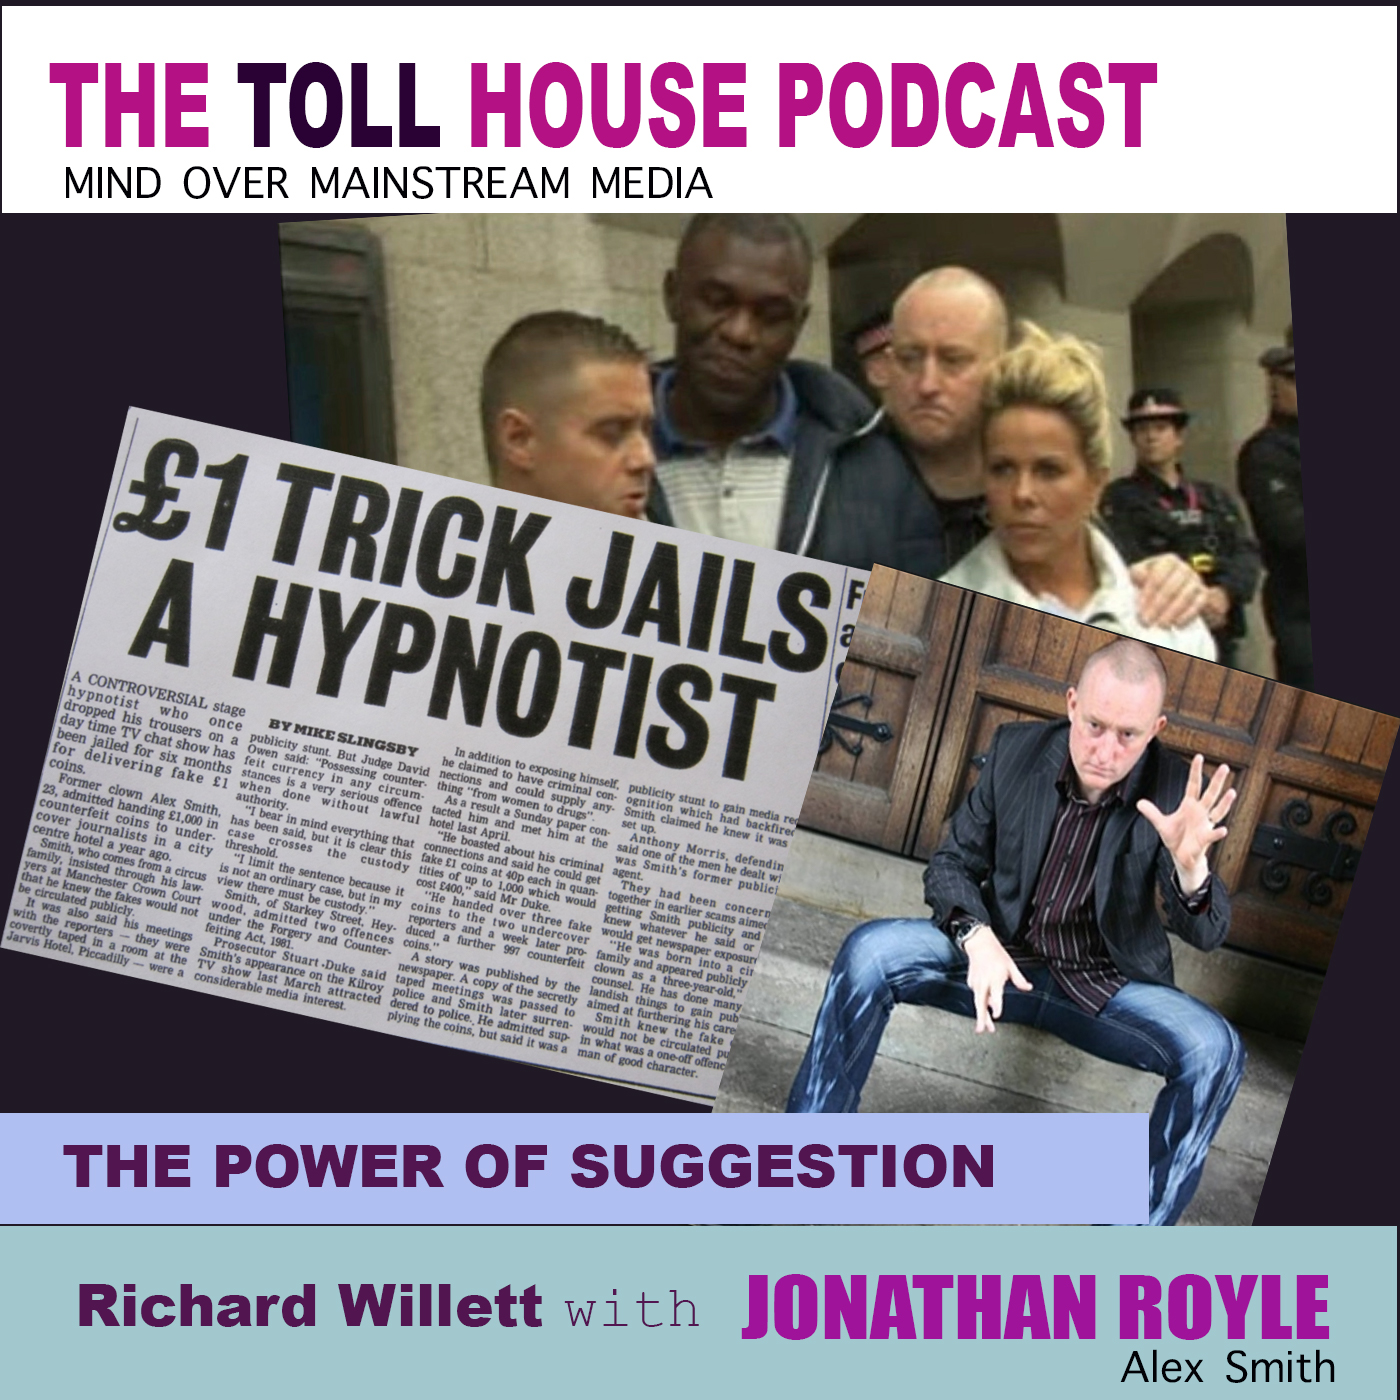 THE TOLL HOUSE EP#3 - THE POWER OF SUGGESTION with JONATHAN ROYLE